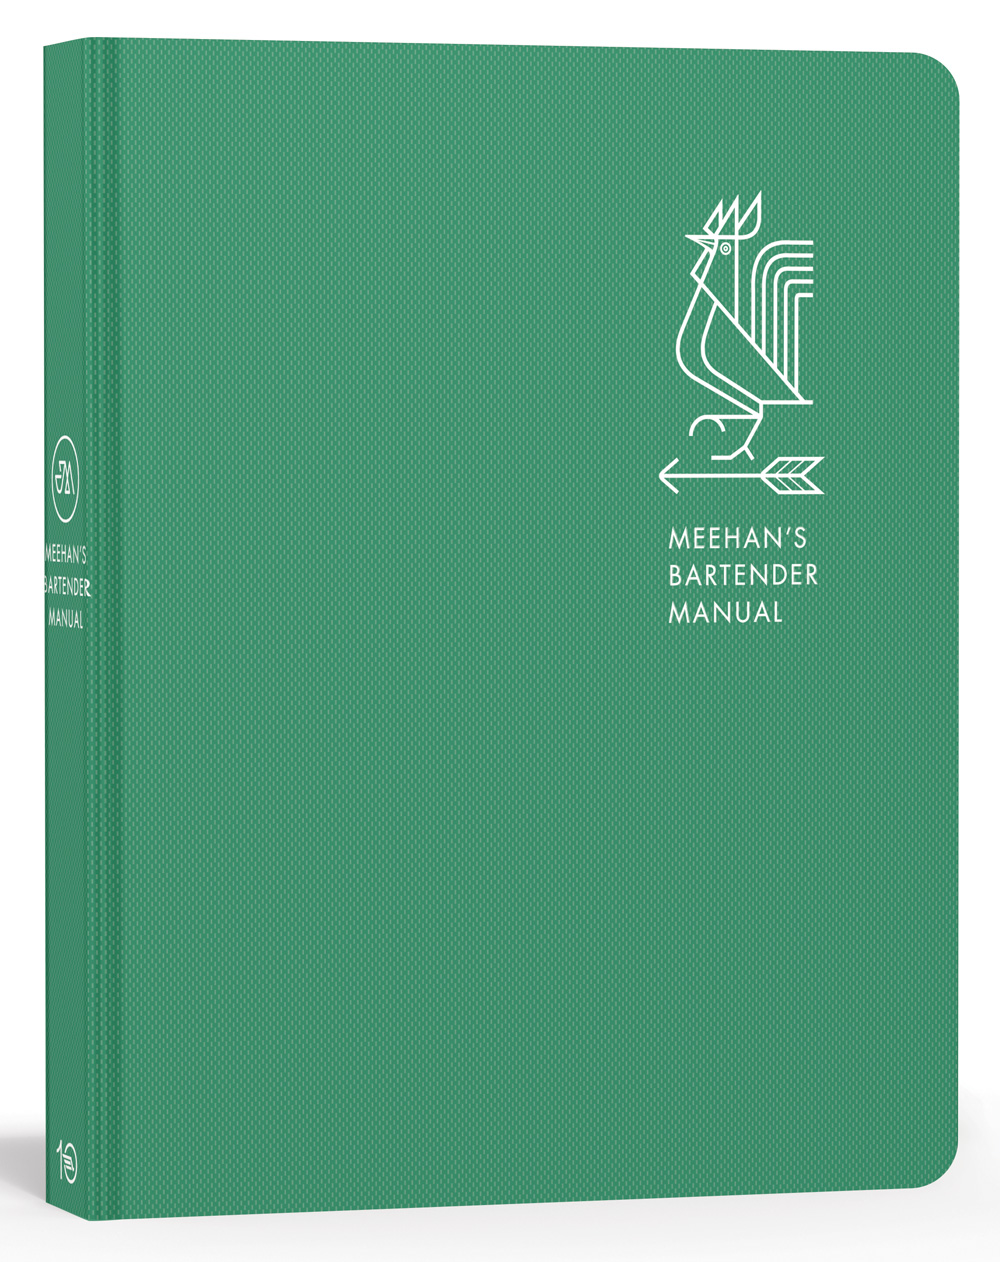 meehan's-Bartender-Manual-9781607748625